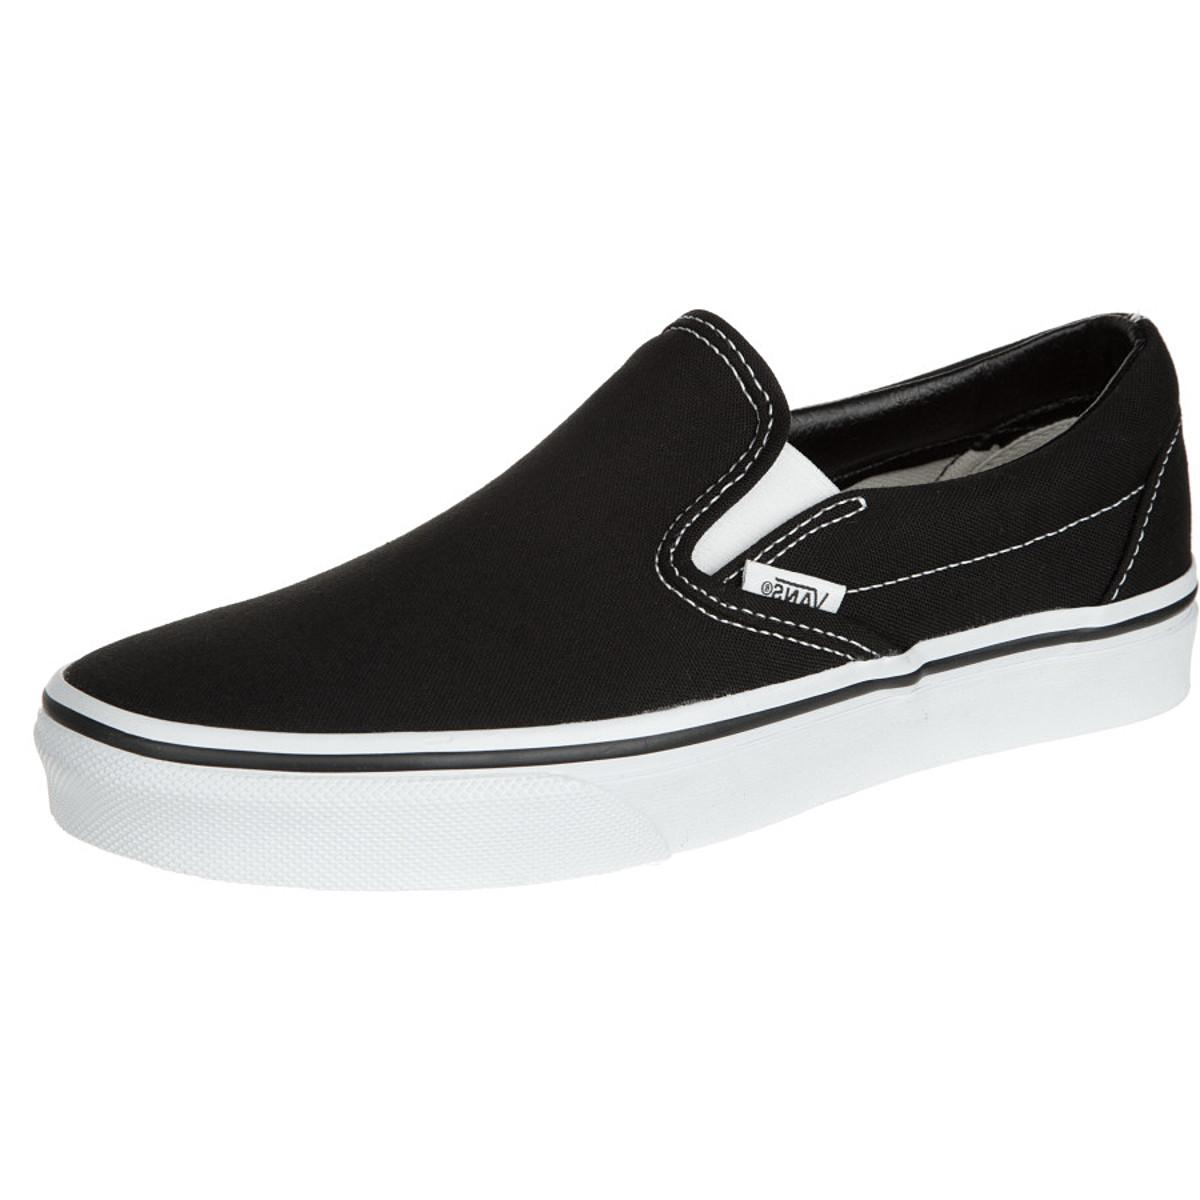 Vans Classic Slip-On Core Classic Shoe - Men's Black, 8.5